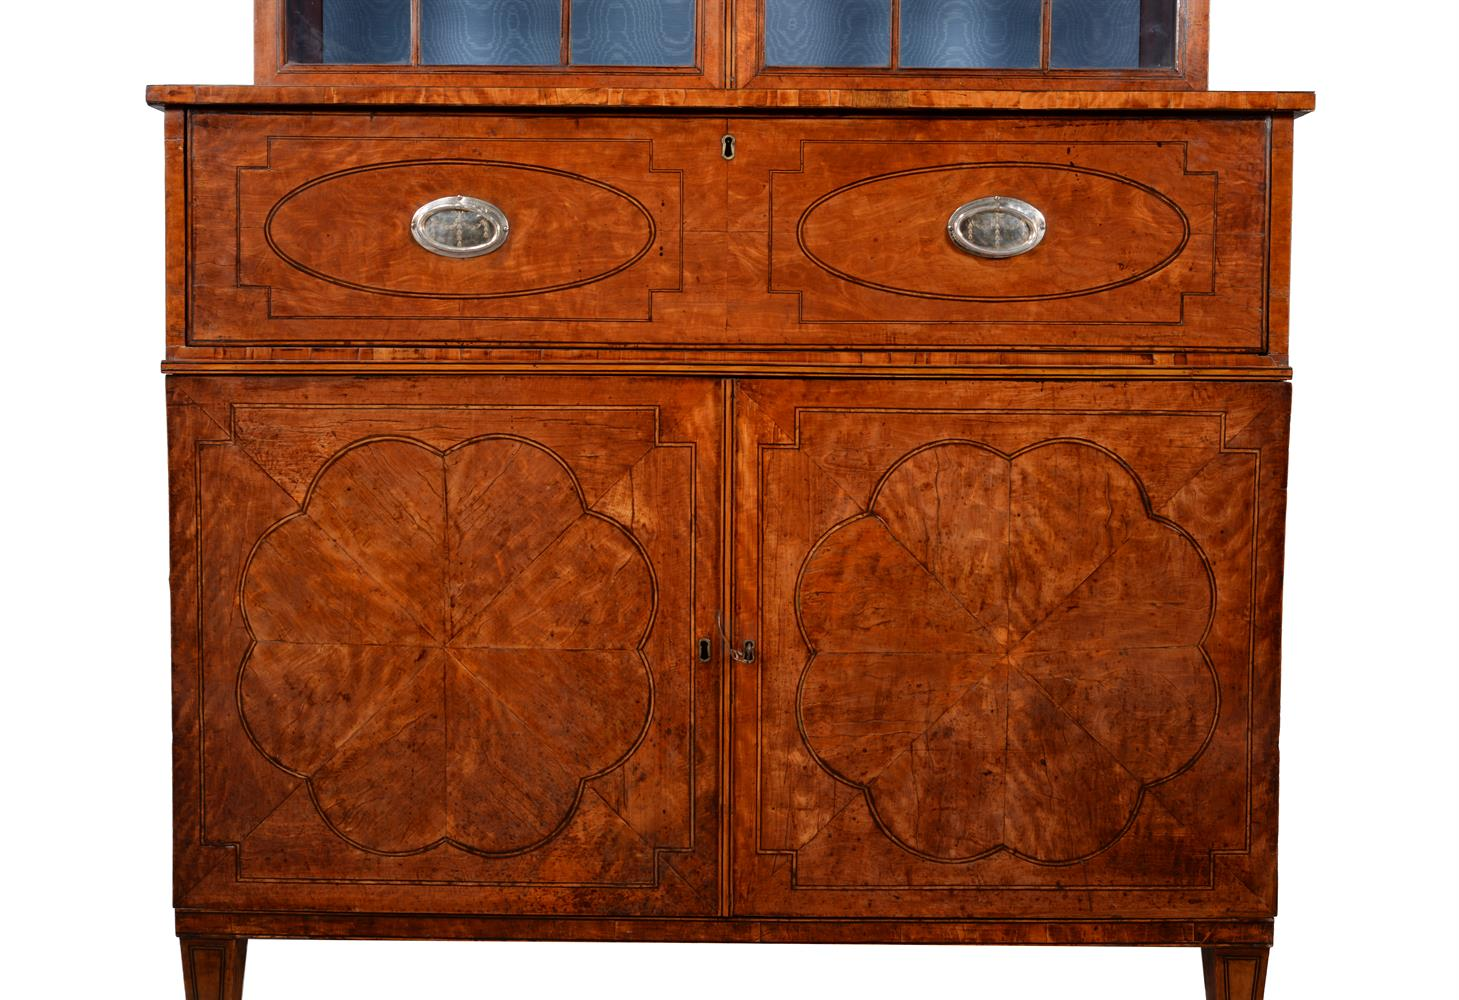 A GEORGE III SATINWOOD AND LINE INLAID SECRETAIRE BOOKCASE, CIRCA 1790 - Image 3 of 6